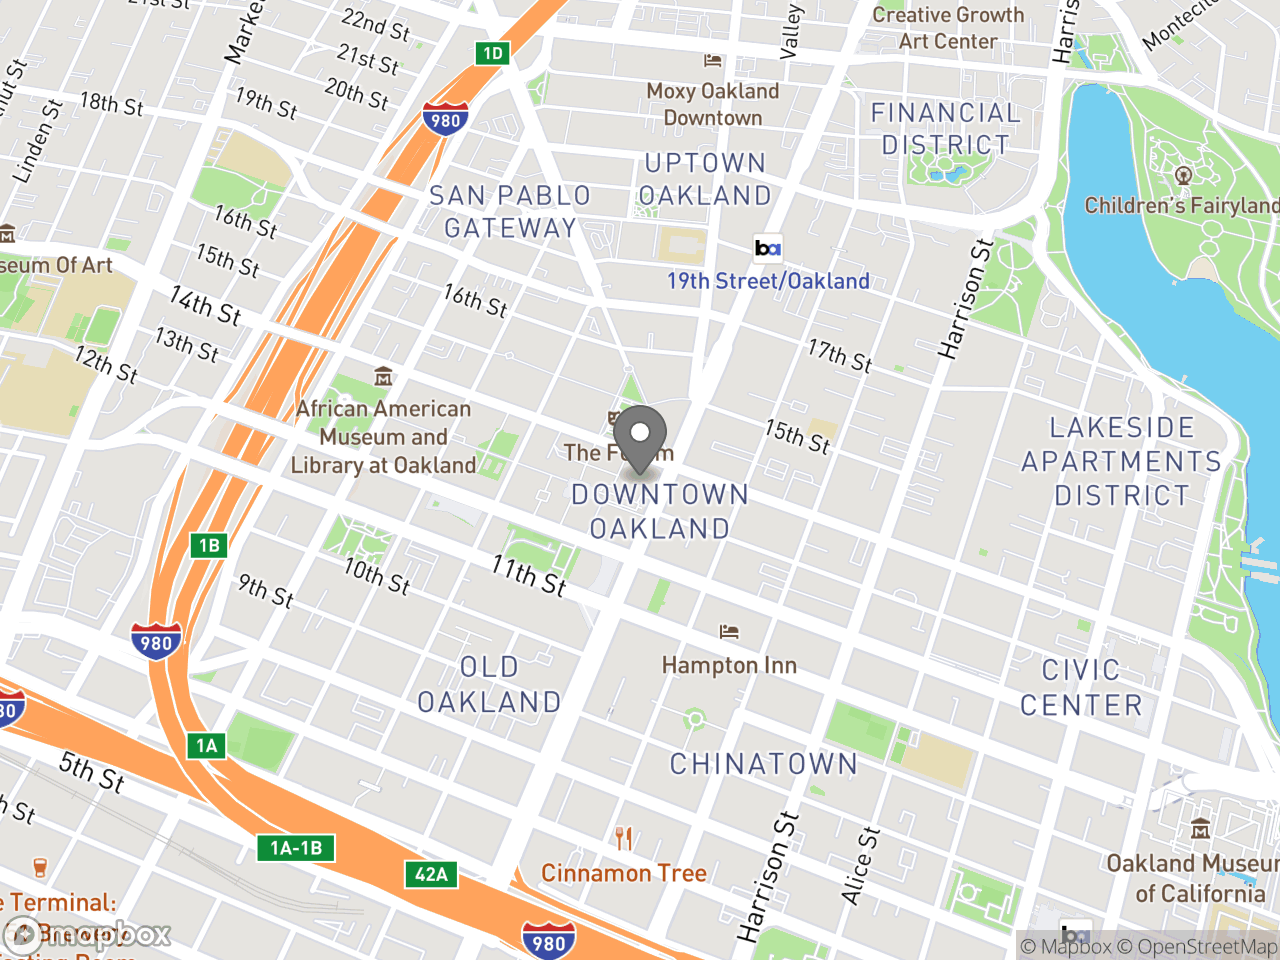 Map image for September 25, 2019 Oakland Chamber of Commerce - Downtown Oakland Specific Plan, located at 1333 Broadway in Oakland, CA 94612